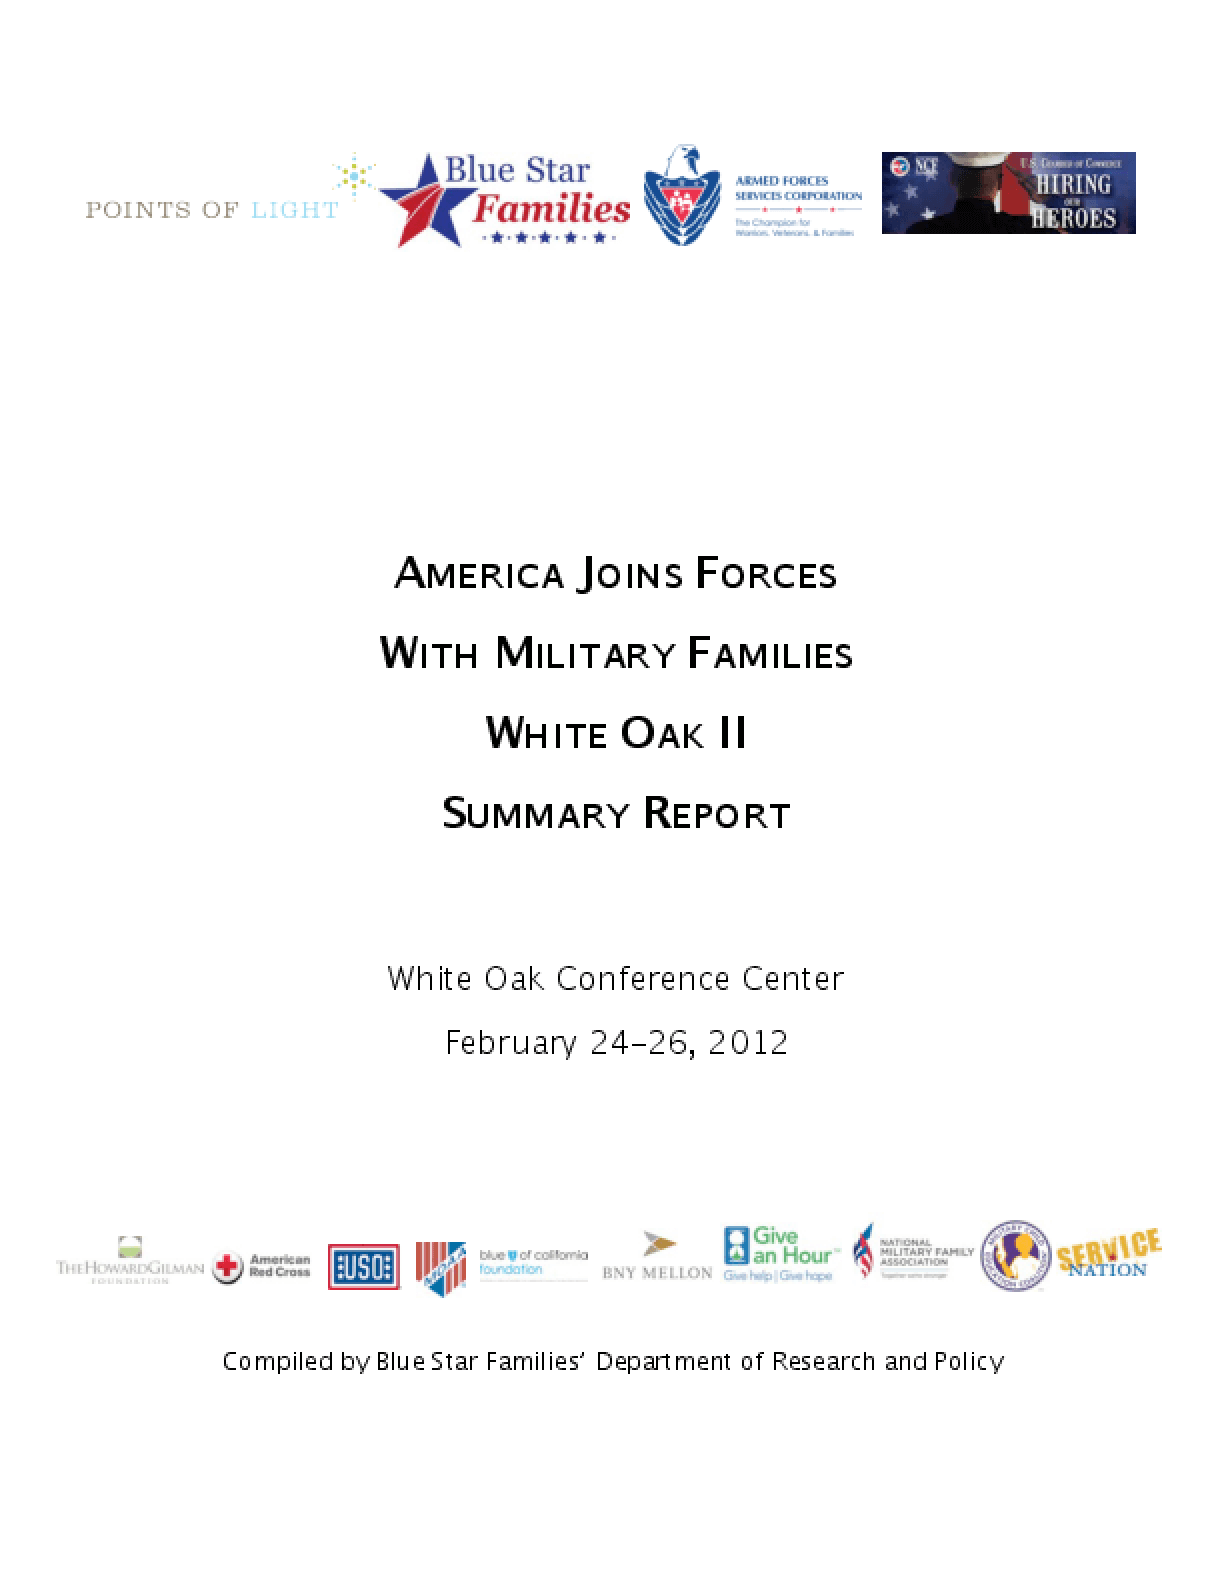 America Joins Forces with Military Families: White Oak II Summary Report